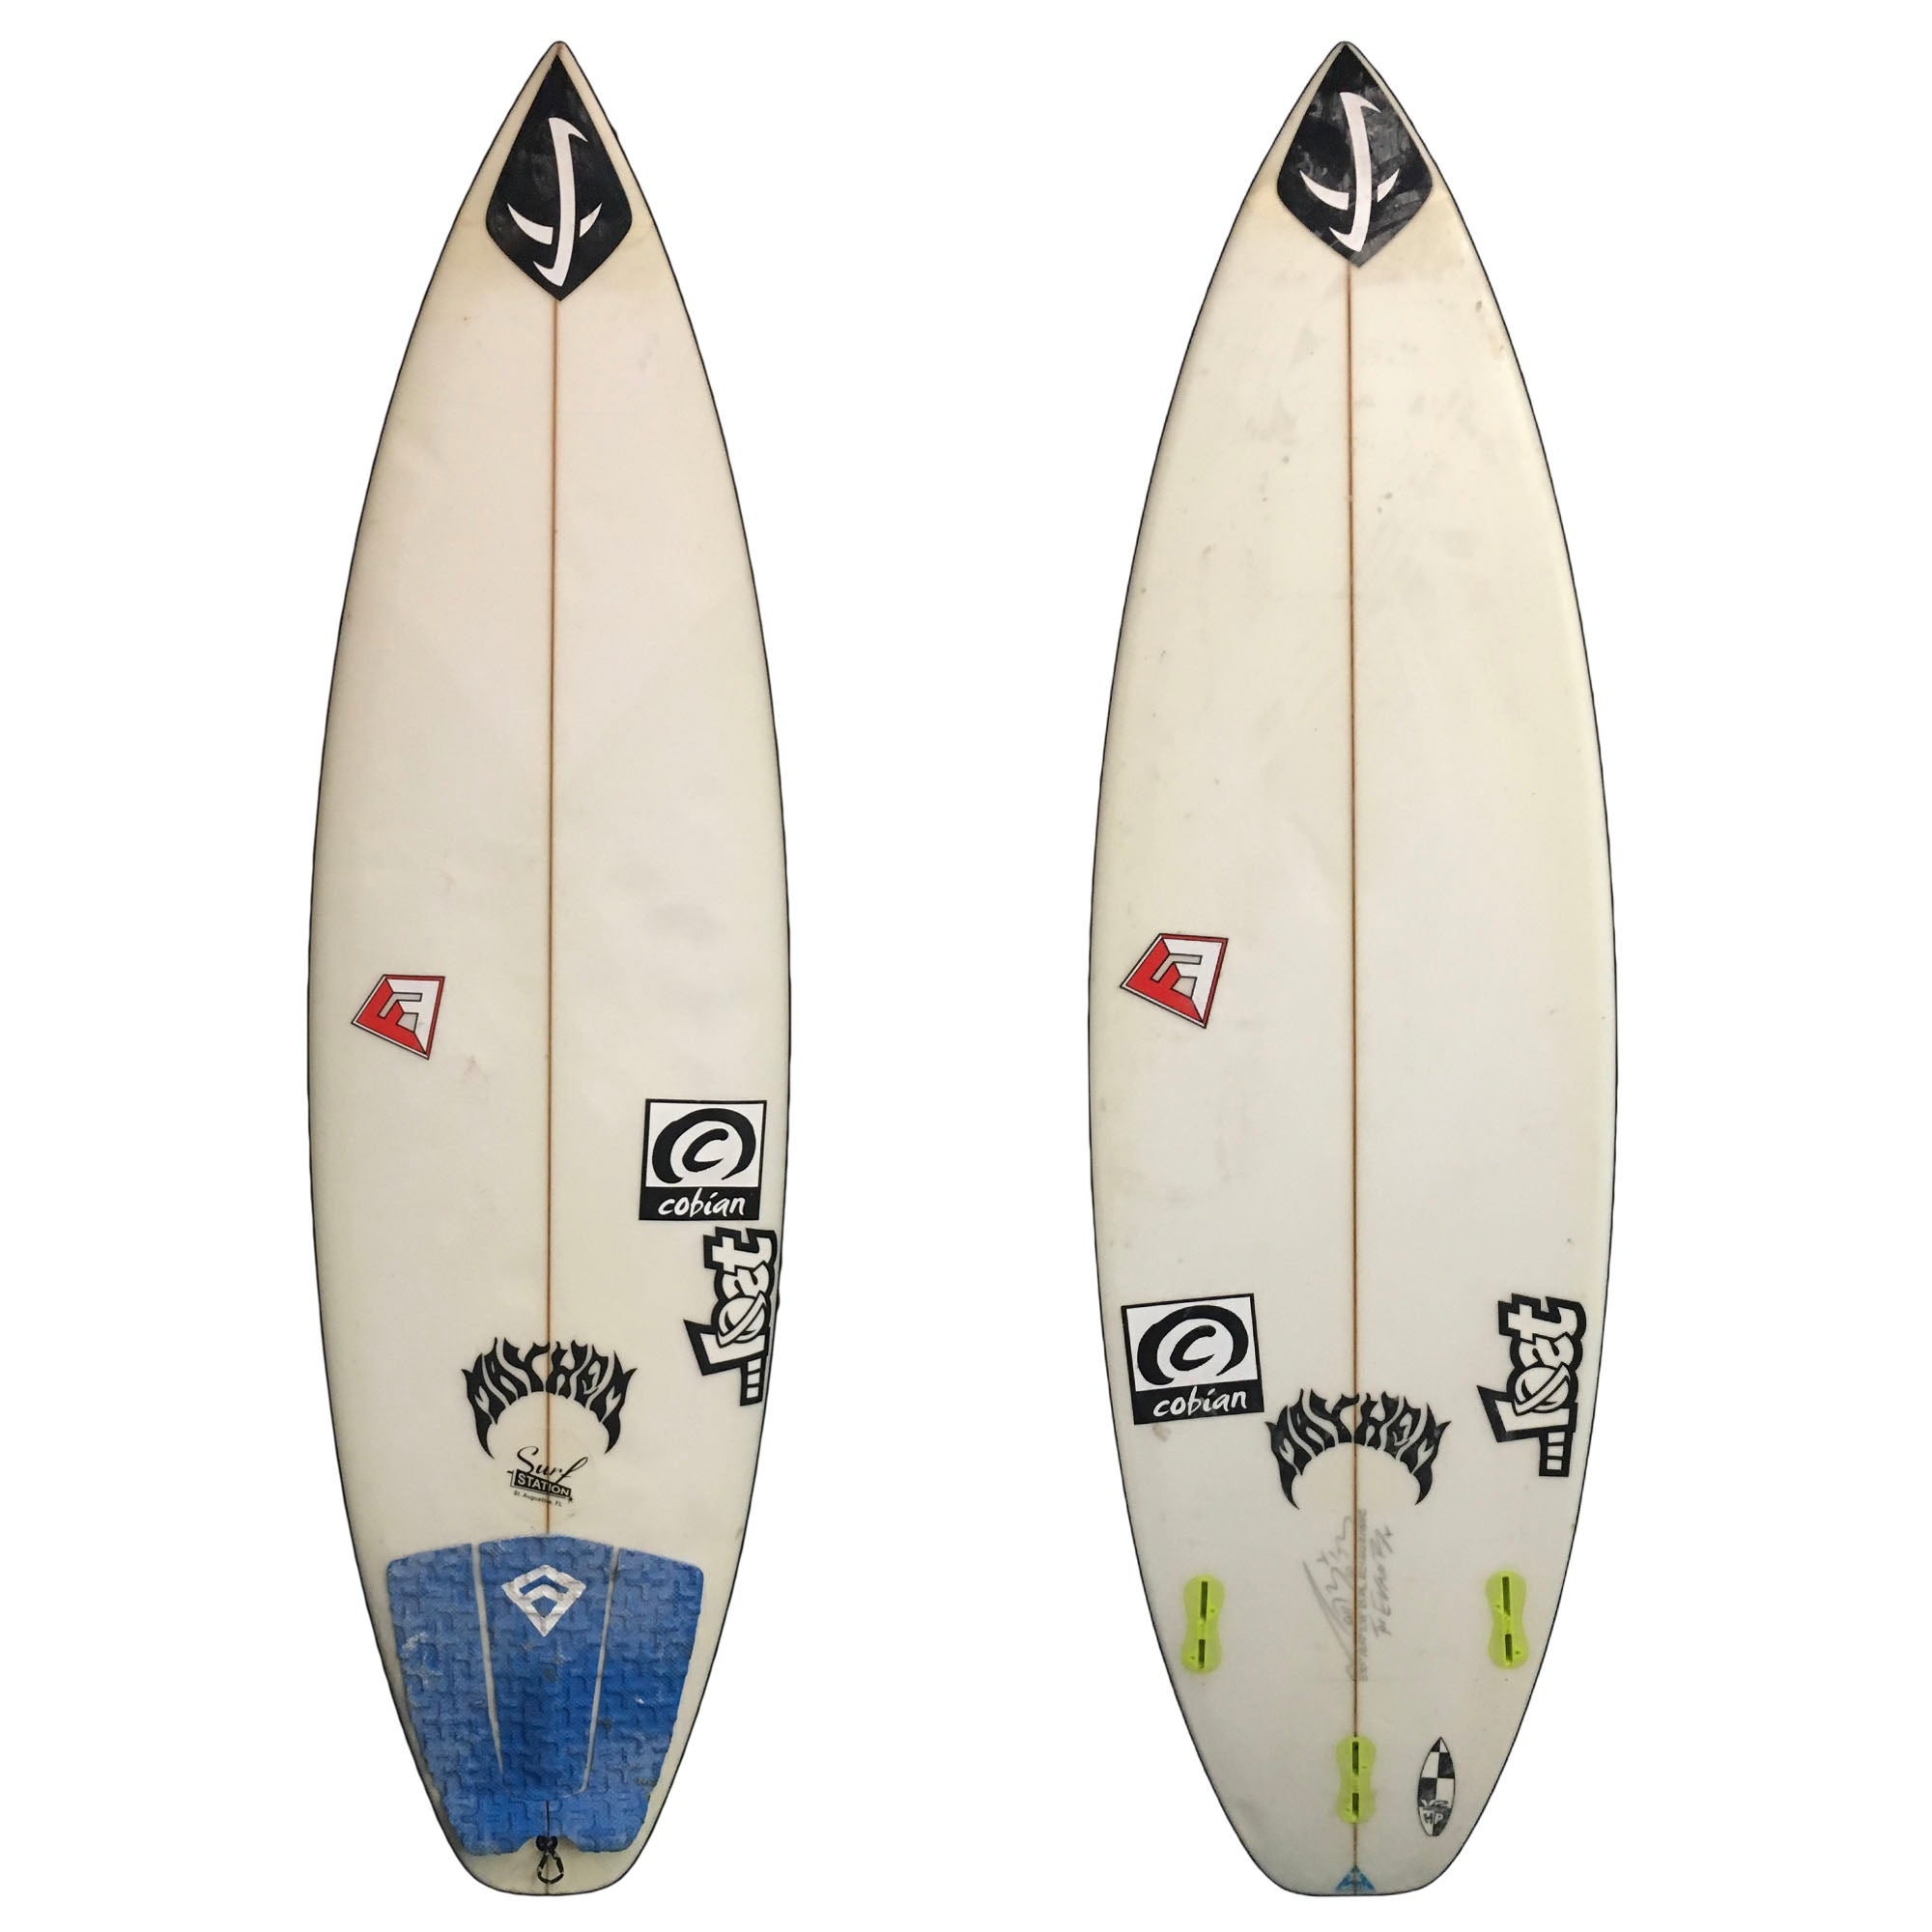 Lost V2 HP 5'9 1/2 Used Surfboard